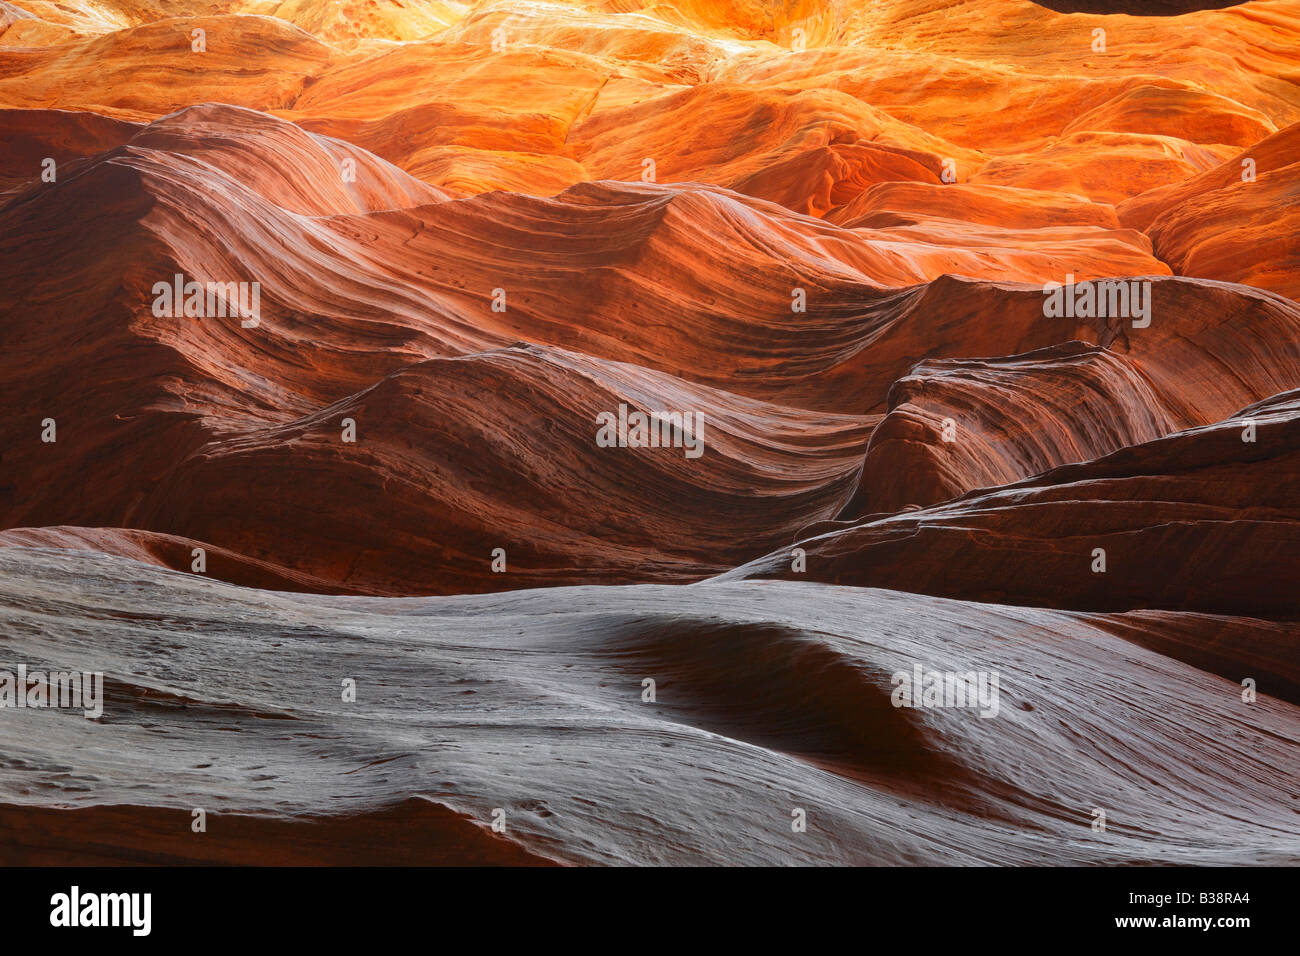 Dans la paroi du canyon Buckskin Gulch, Paria Canyon Wilderness Photo Stock